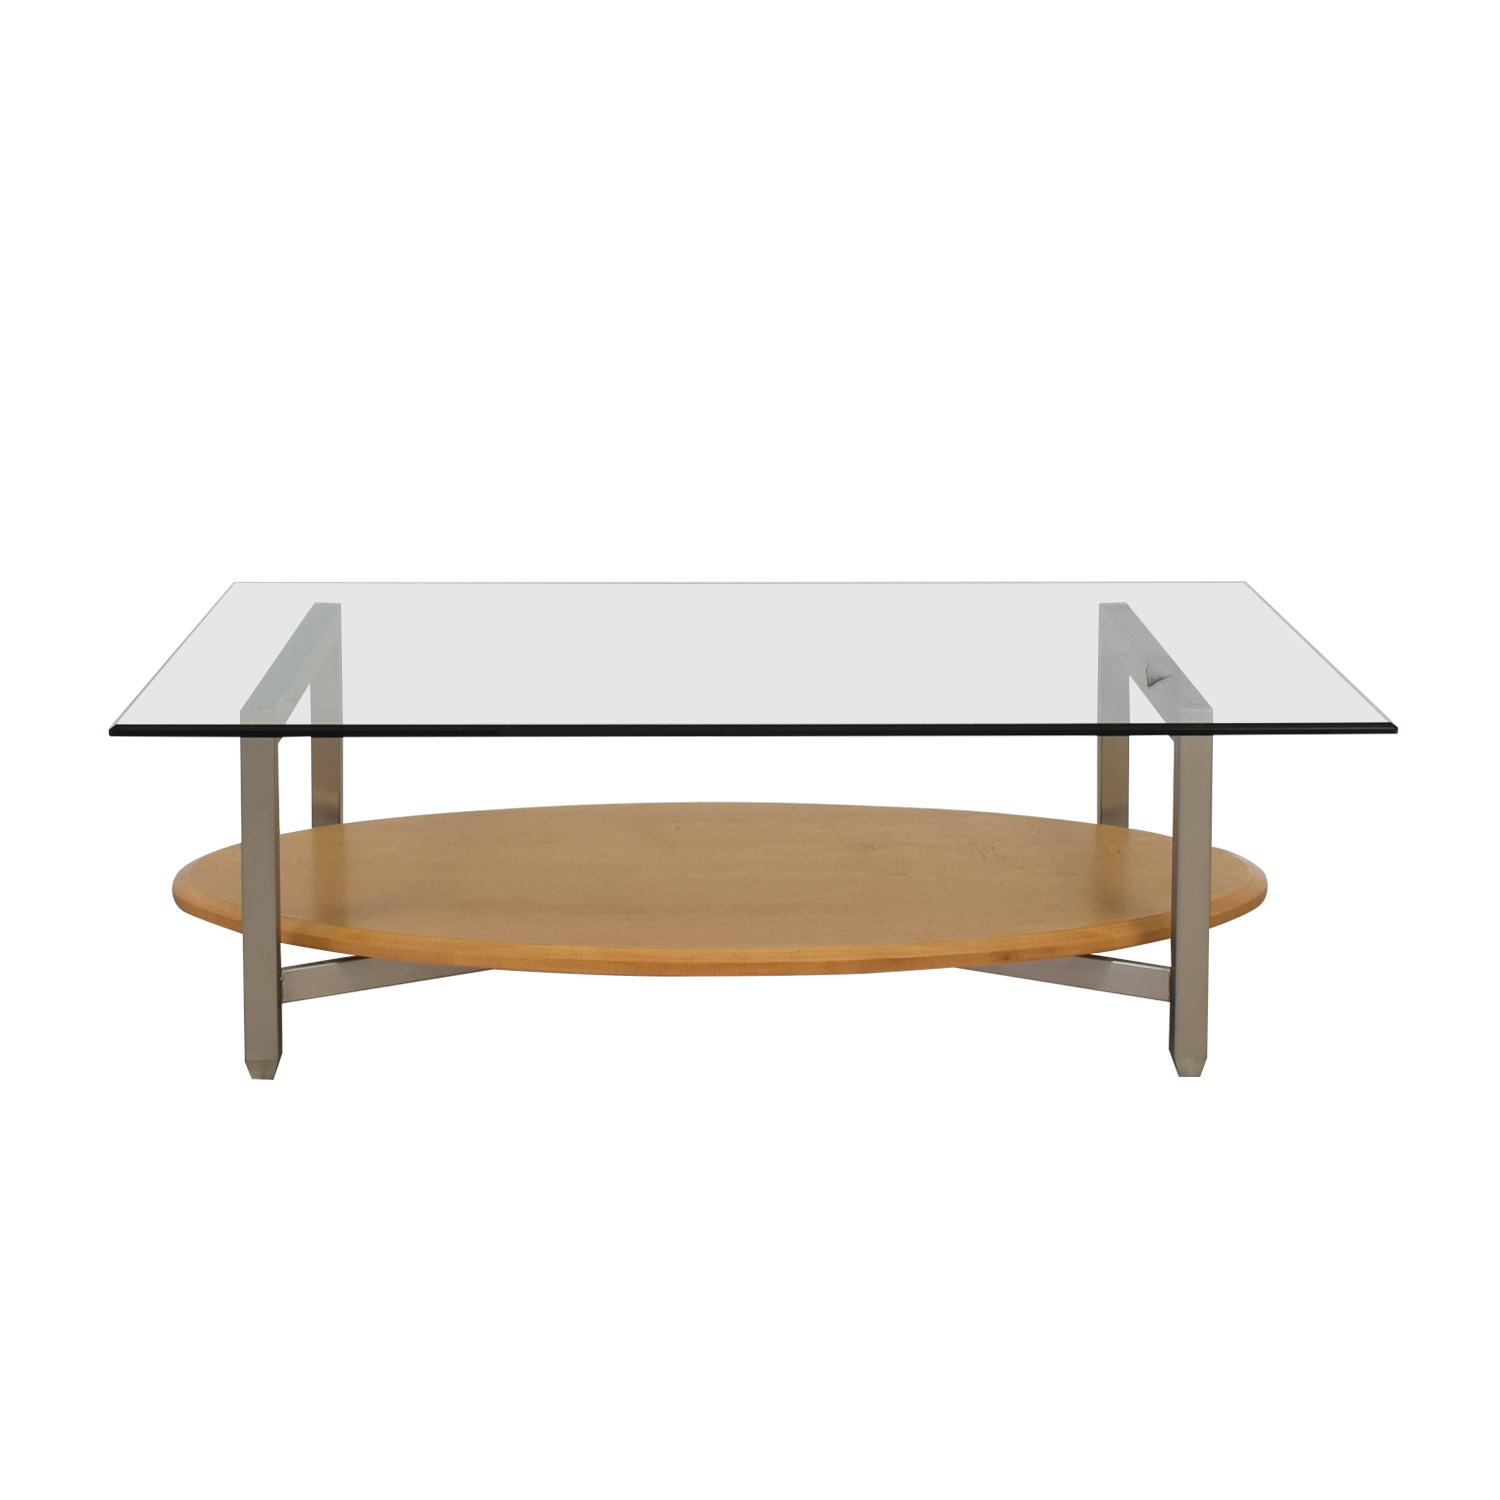 Ethan Allen Trevor Coffee Table: Ethan Allen Ethan Allen Glass Metal Wood Coffee